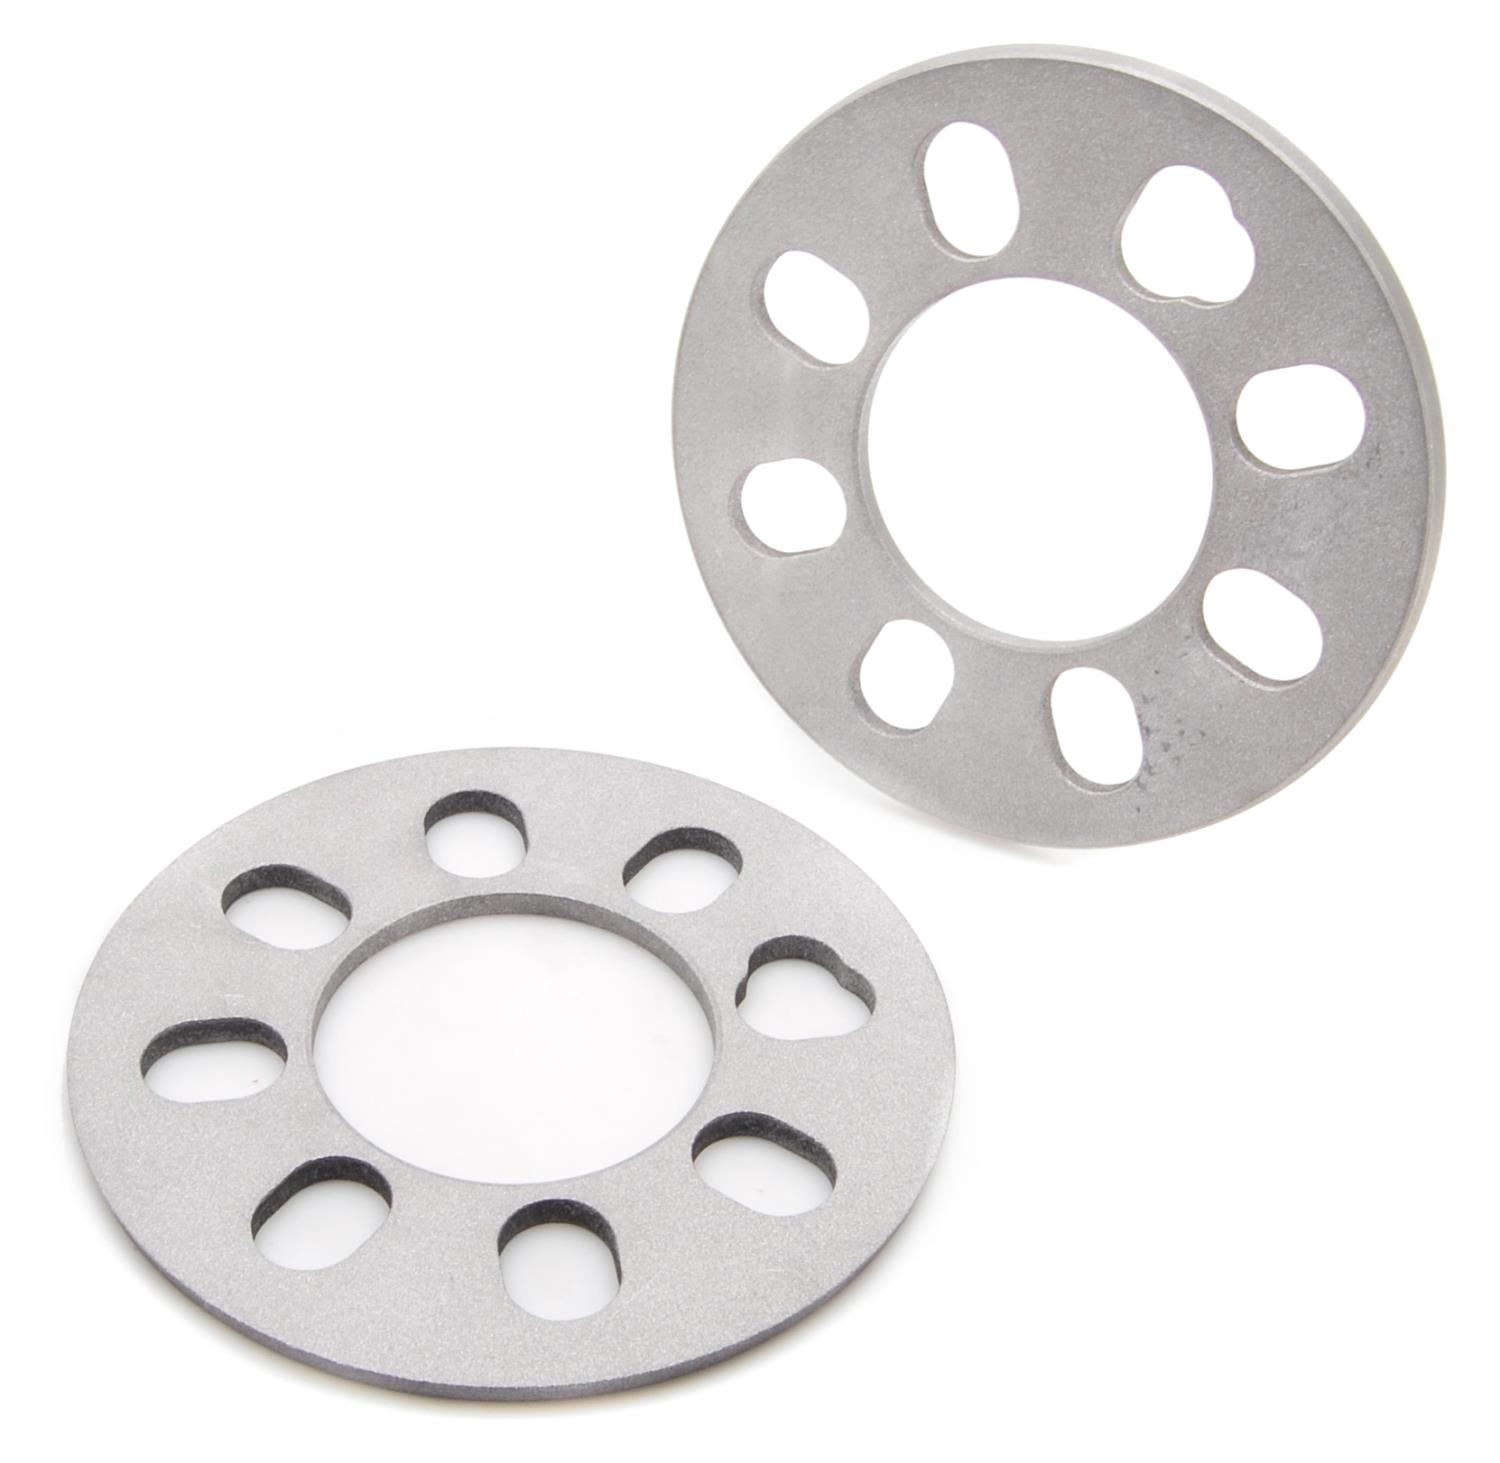 JEGS Performance Products 65075 - JEGS Cast Aluminum Wheel Spacers